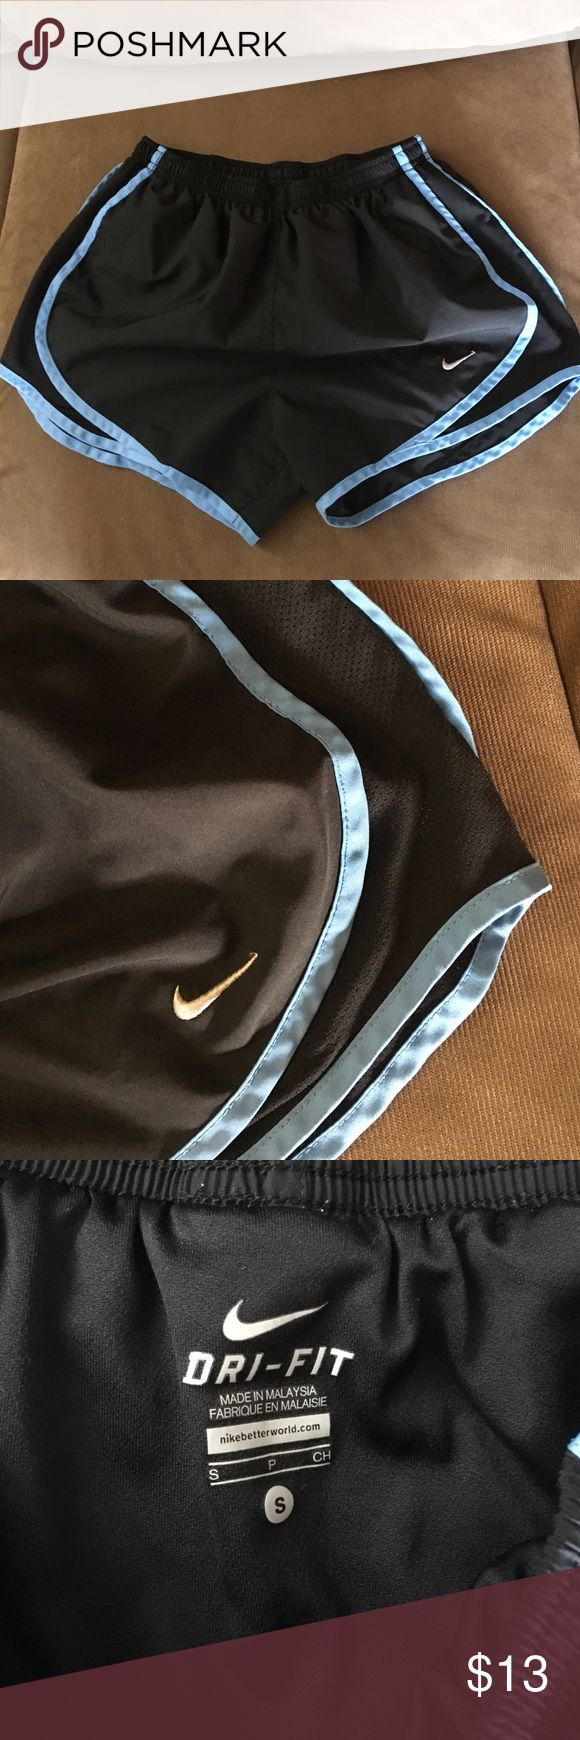 Nike Tempo Shorts Size Small Super cute Tempo Shorts. Fits true to size. No flaws. Worn a couple times. Lowest offer is the price listed. Price firm unless bundled. No trades or Mercari. Nike Shorts